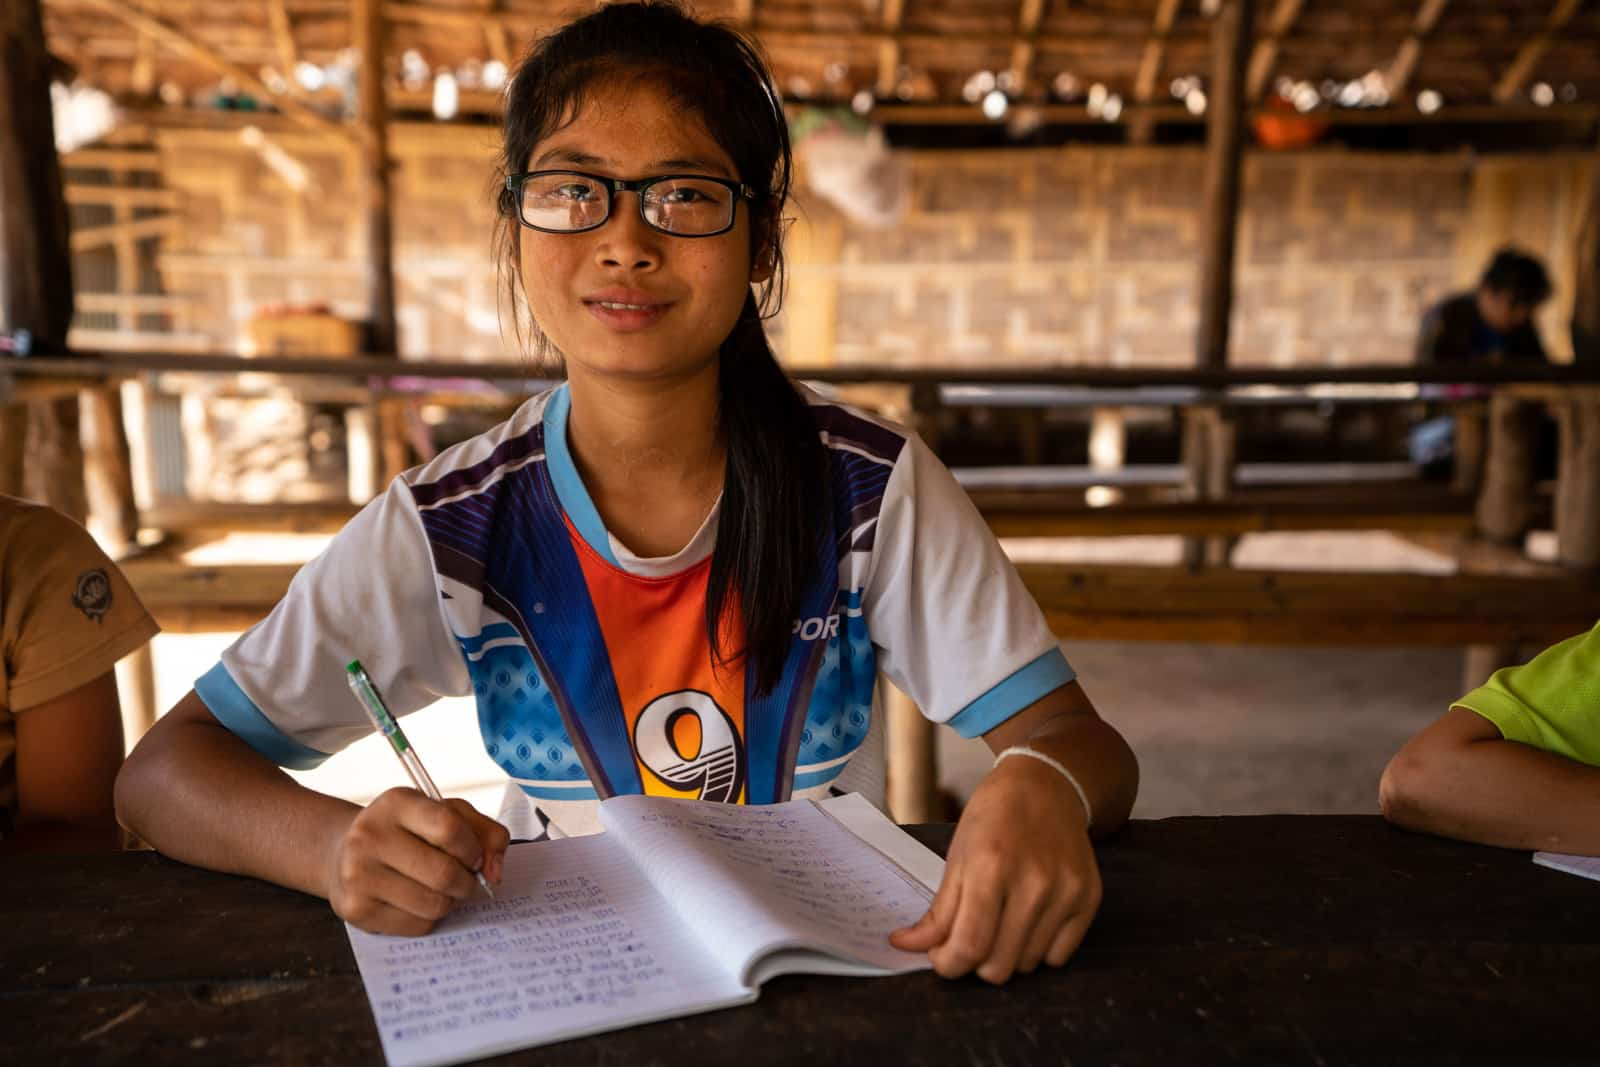 OneSight eye care clinic on the Thailand-Myanmar border - Student with a workbook and glasses - Lost With Purpose travel blog